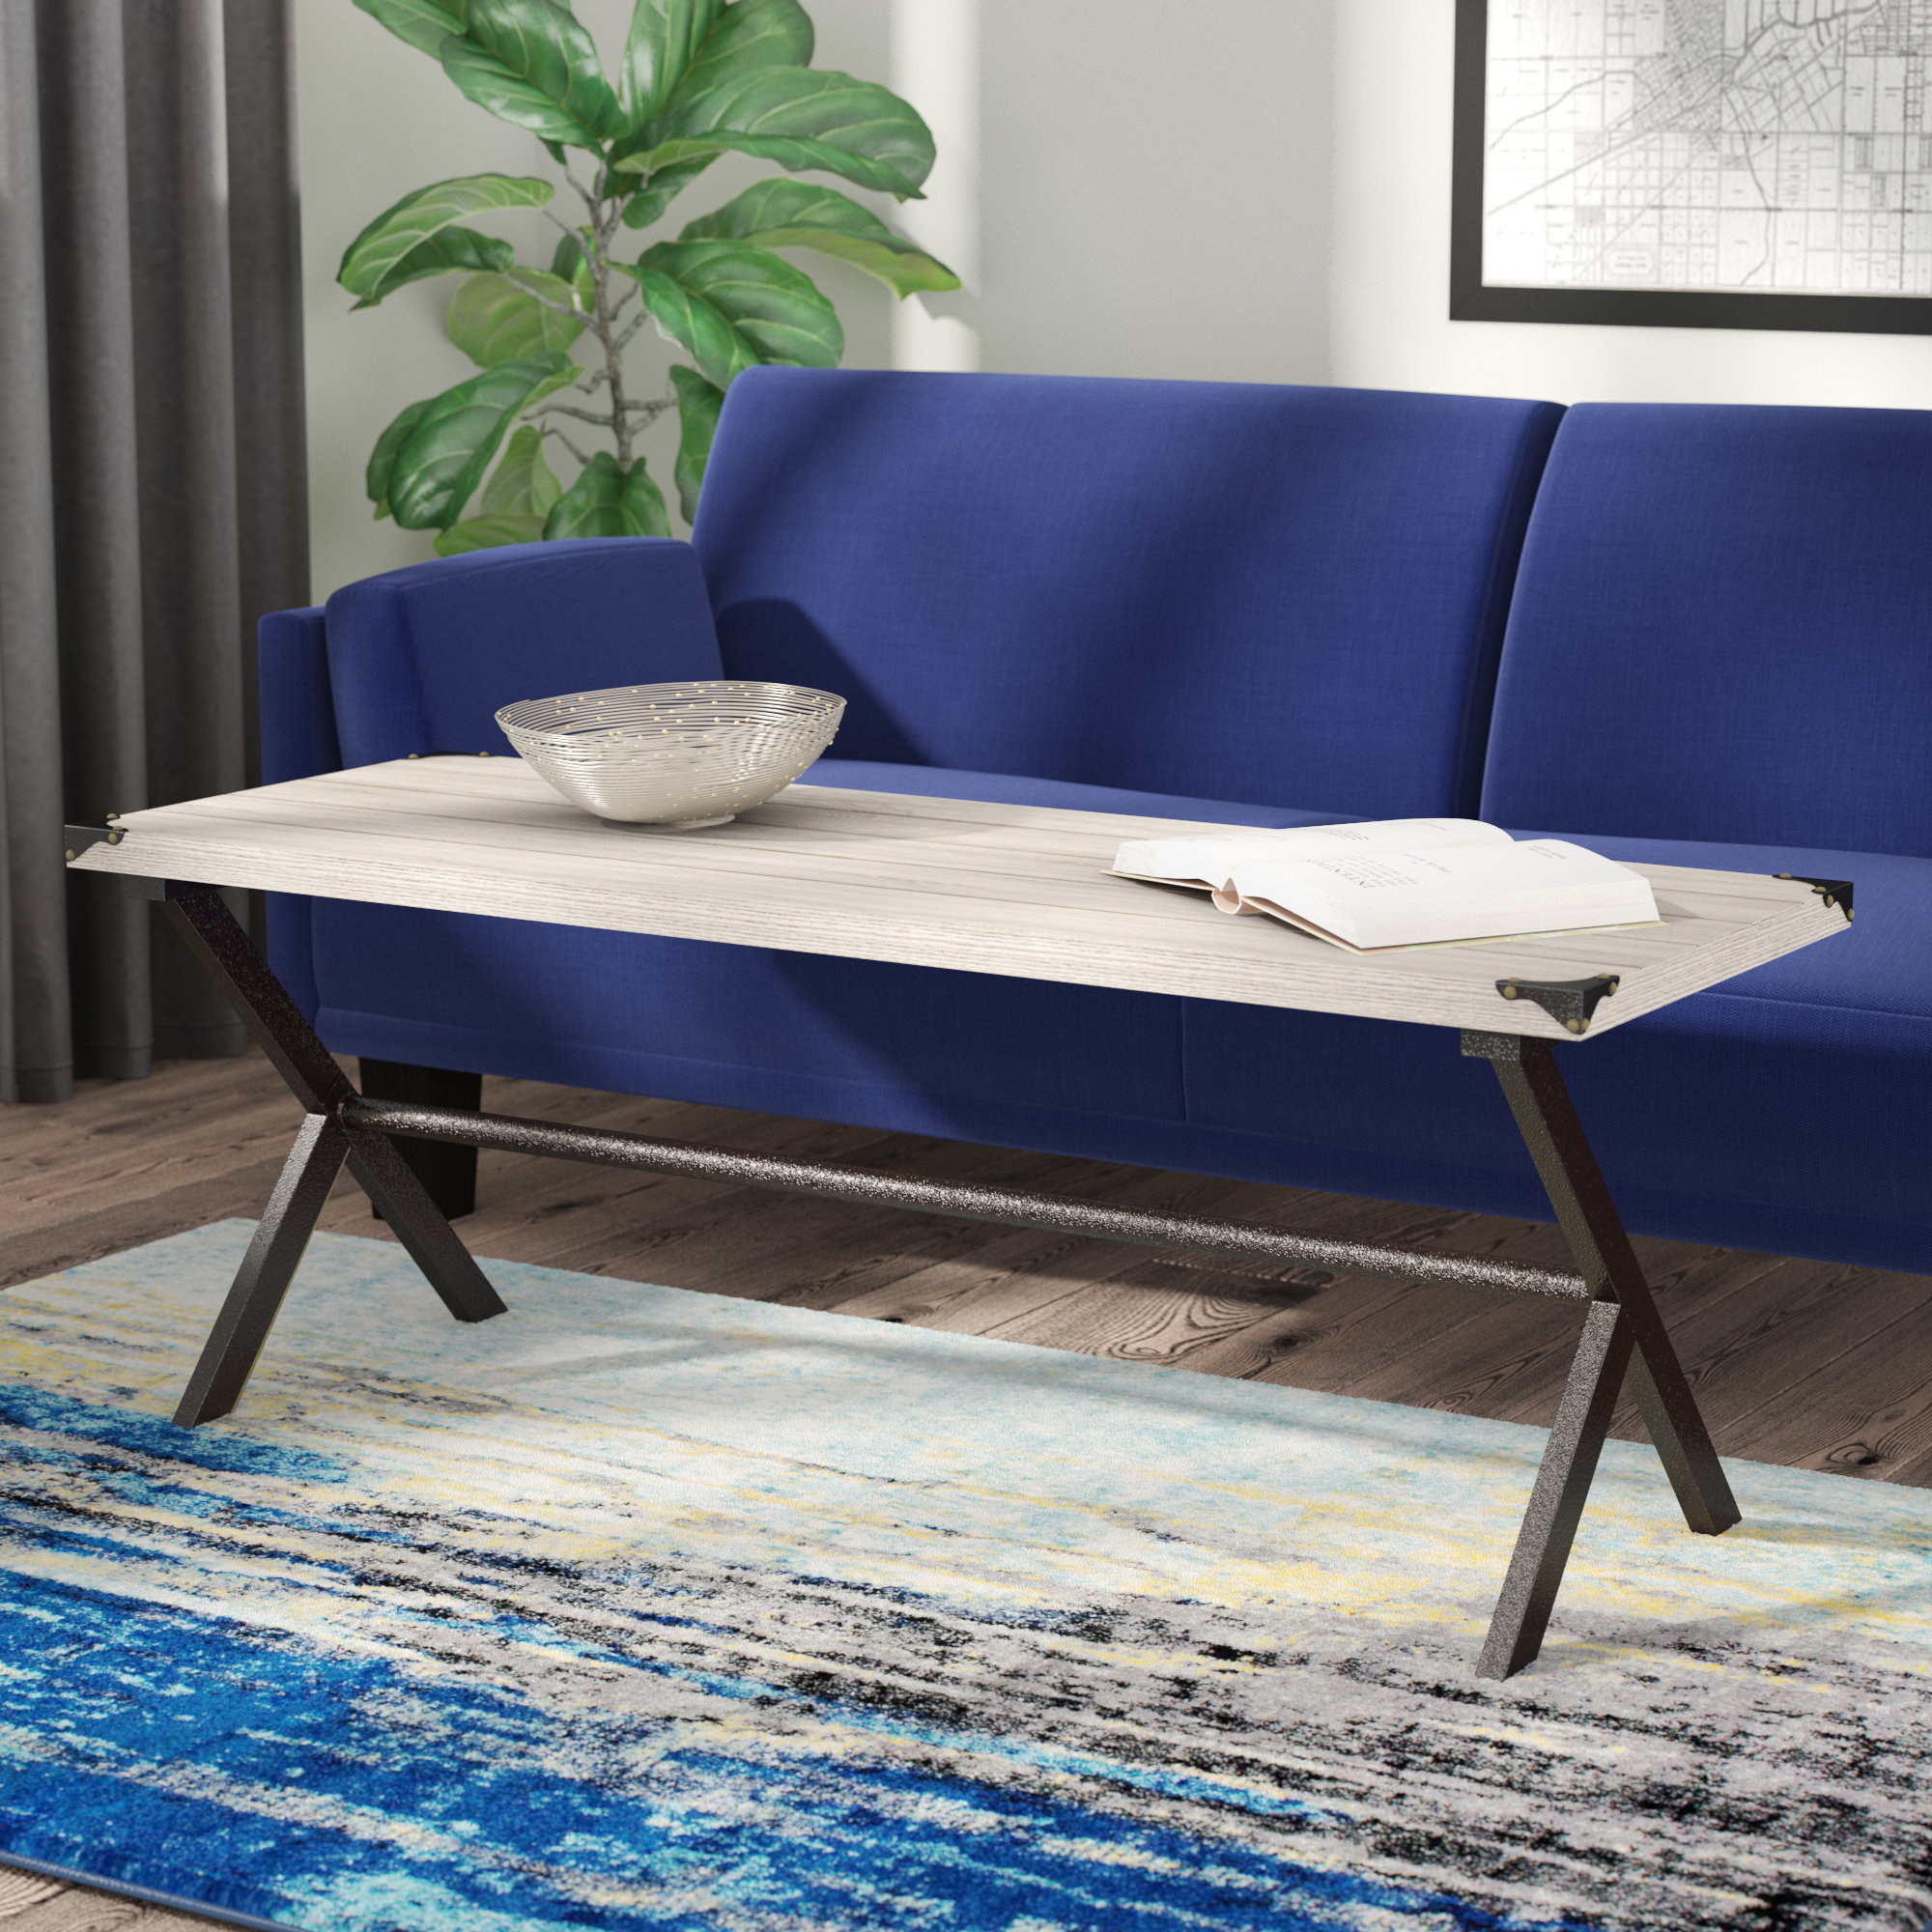 Trent Austin Design Kyra Coffee Table & Reviews | Wayfair In Kyra Console Tables (View 16 of 30)